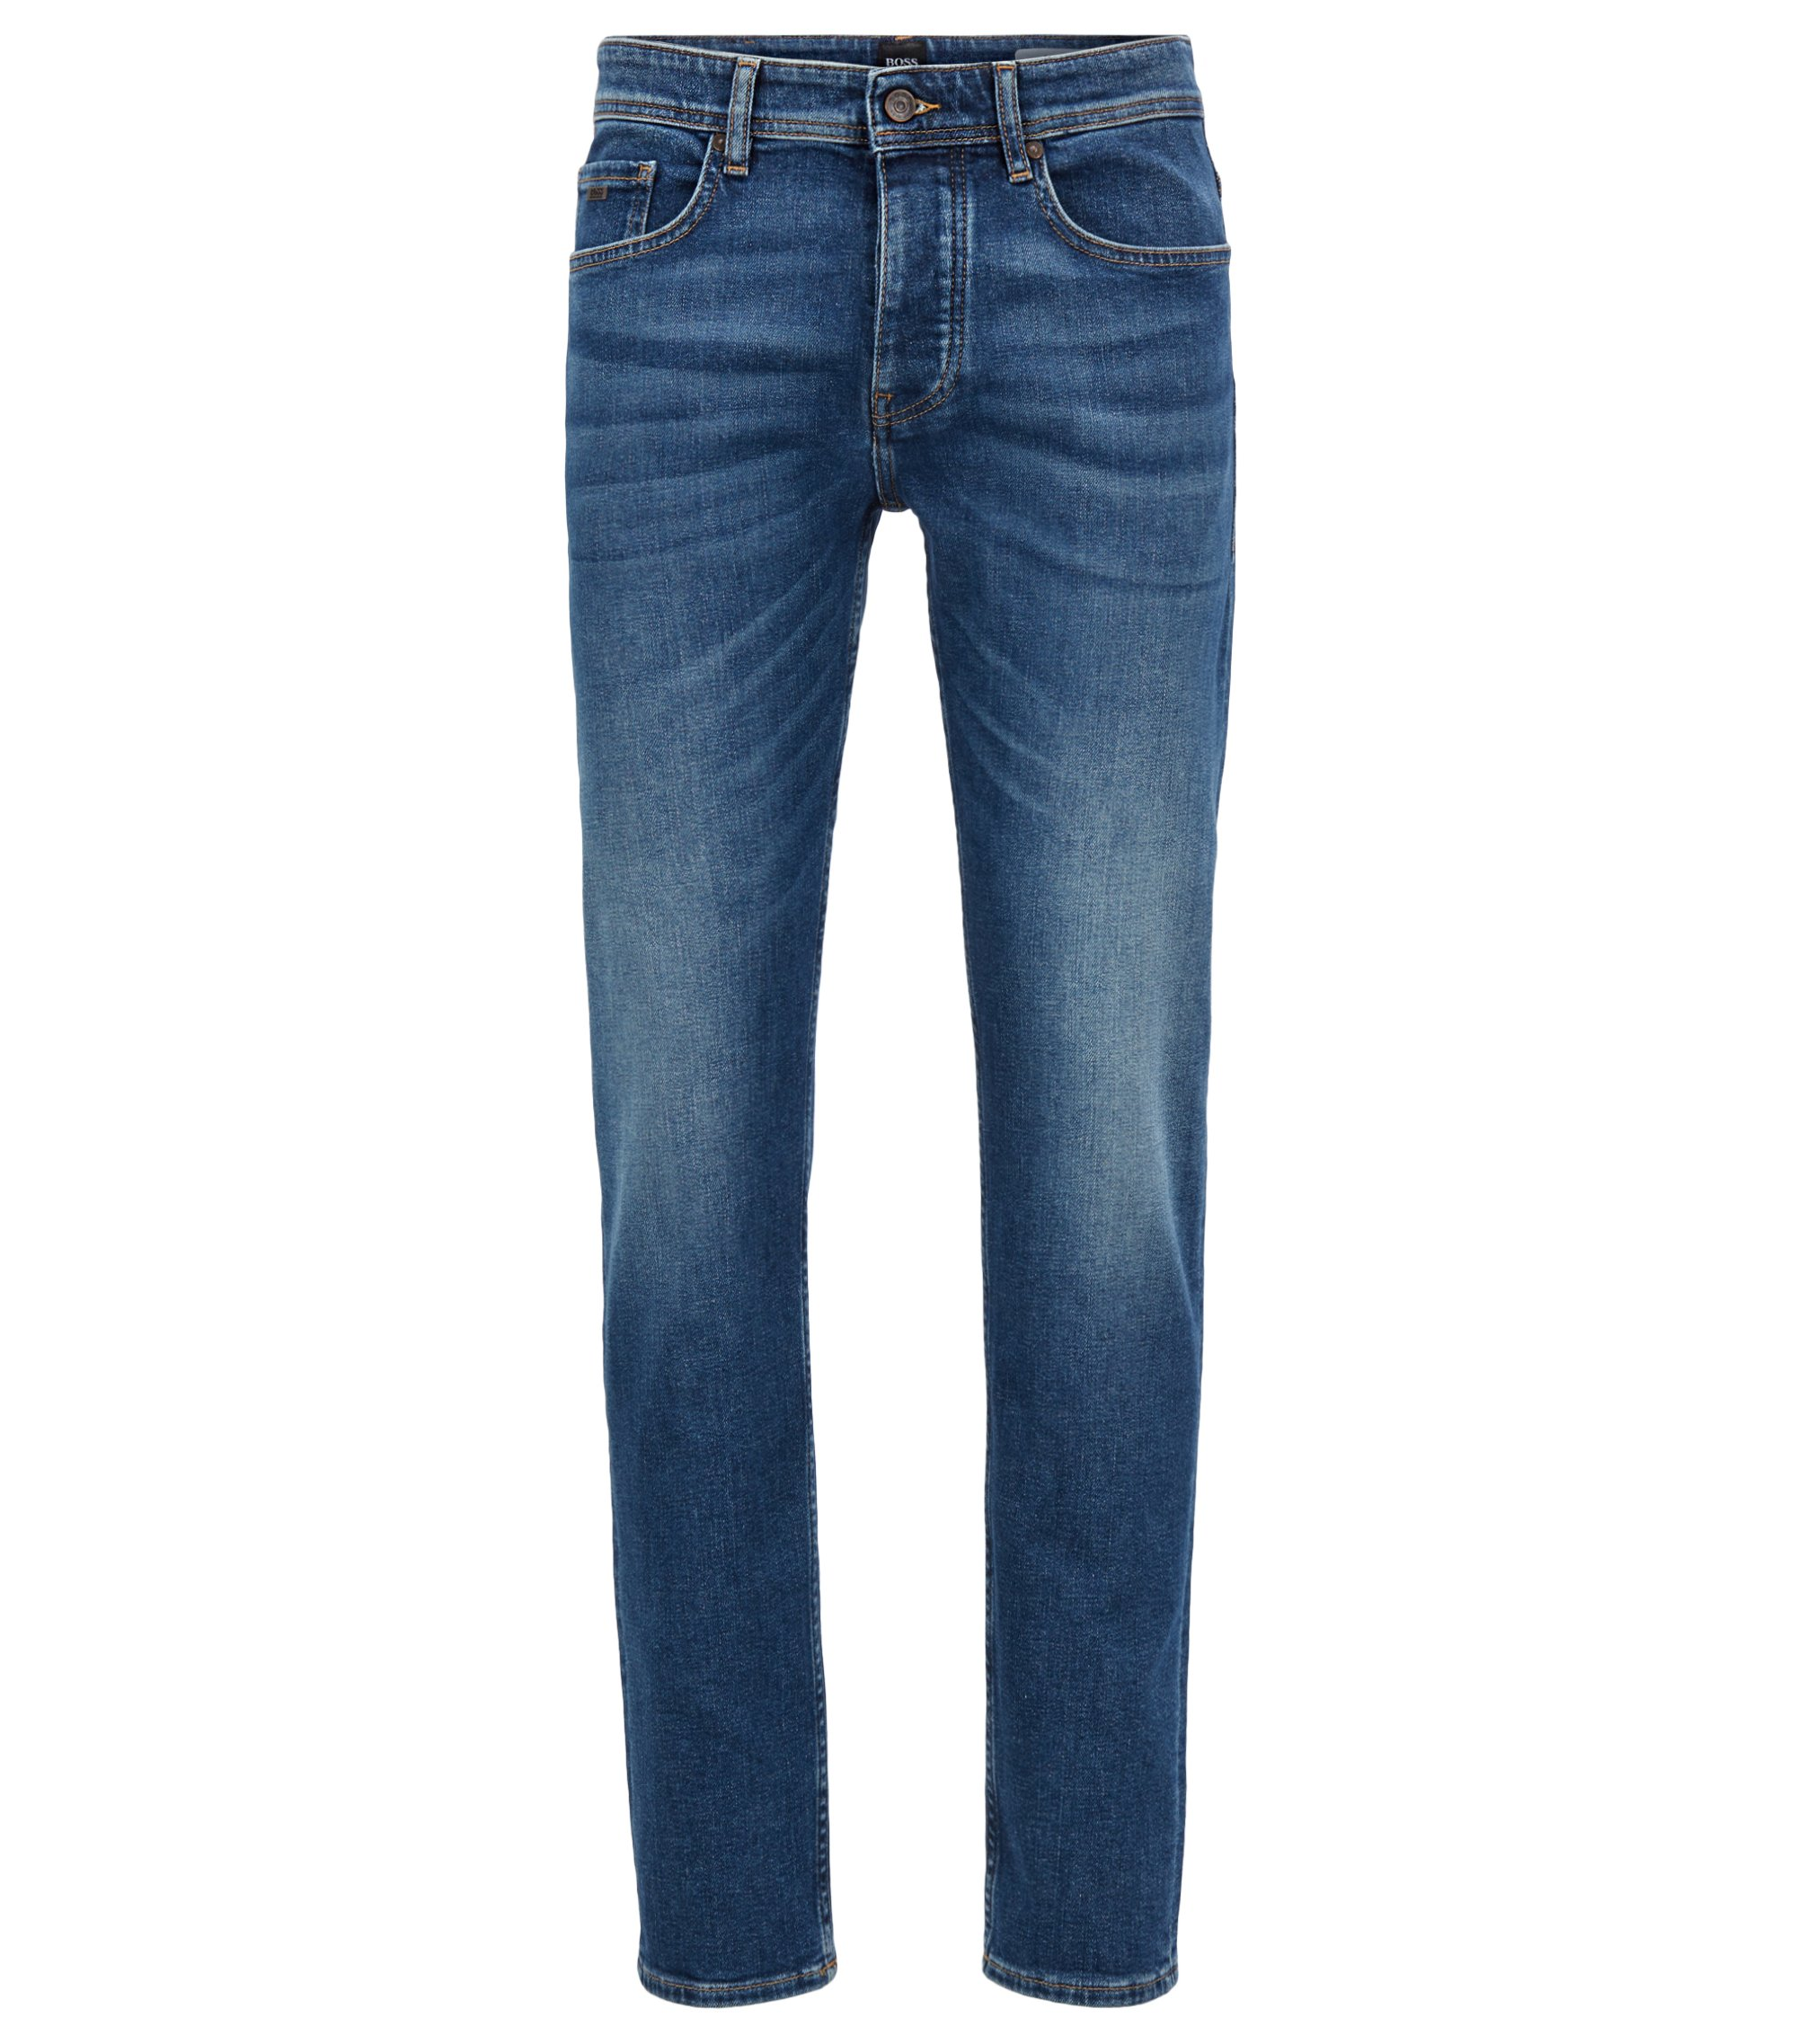 Jeans tapered fit in denim elasticizzato blu medio con effetto vintage, Blu scuro